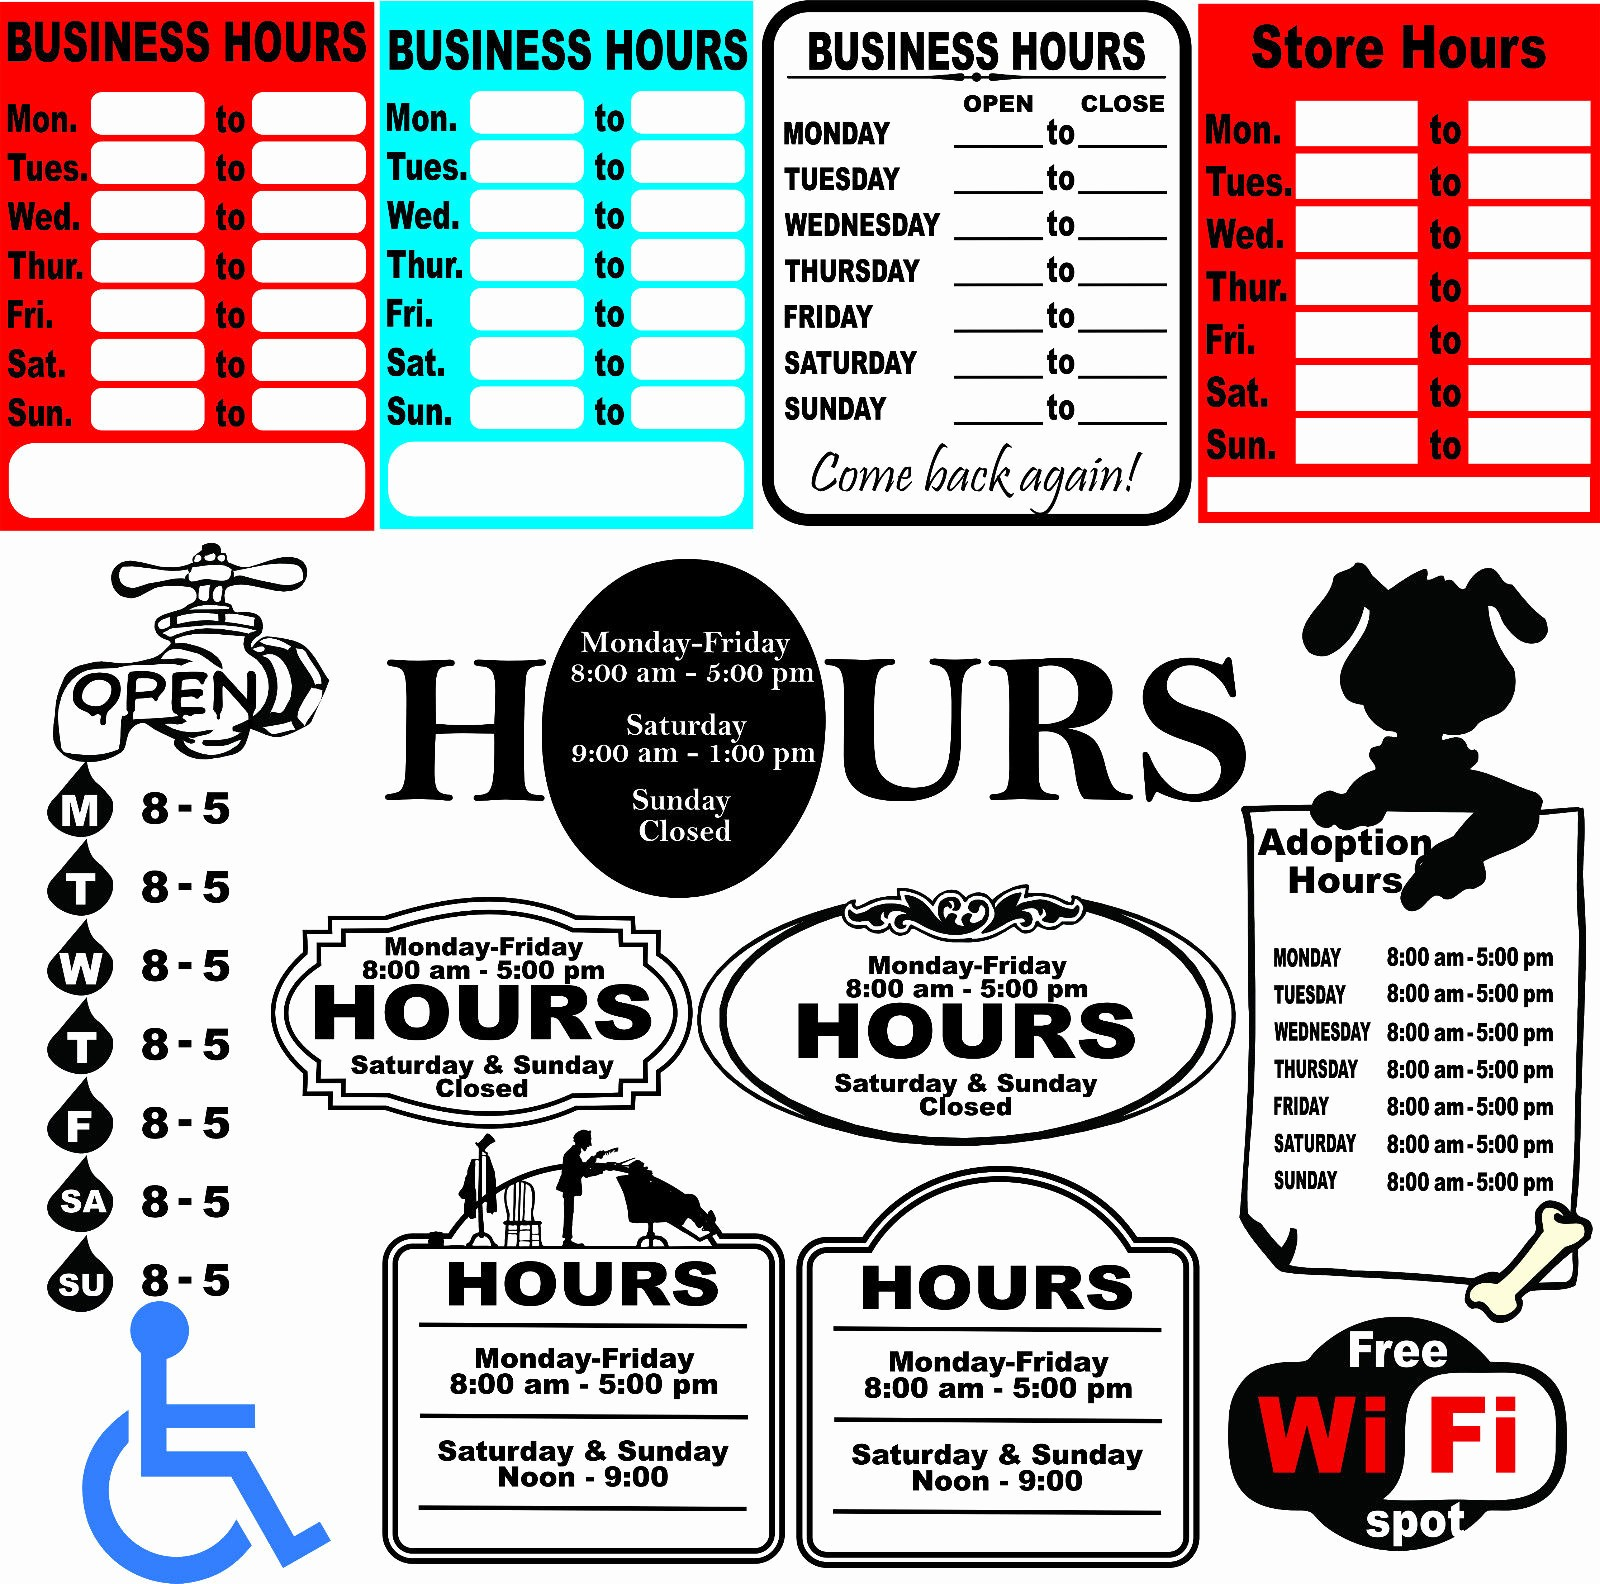 Hours Of Operation Template Word Lovely Business Hours Sign Template Business Hours Template Word